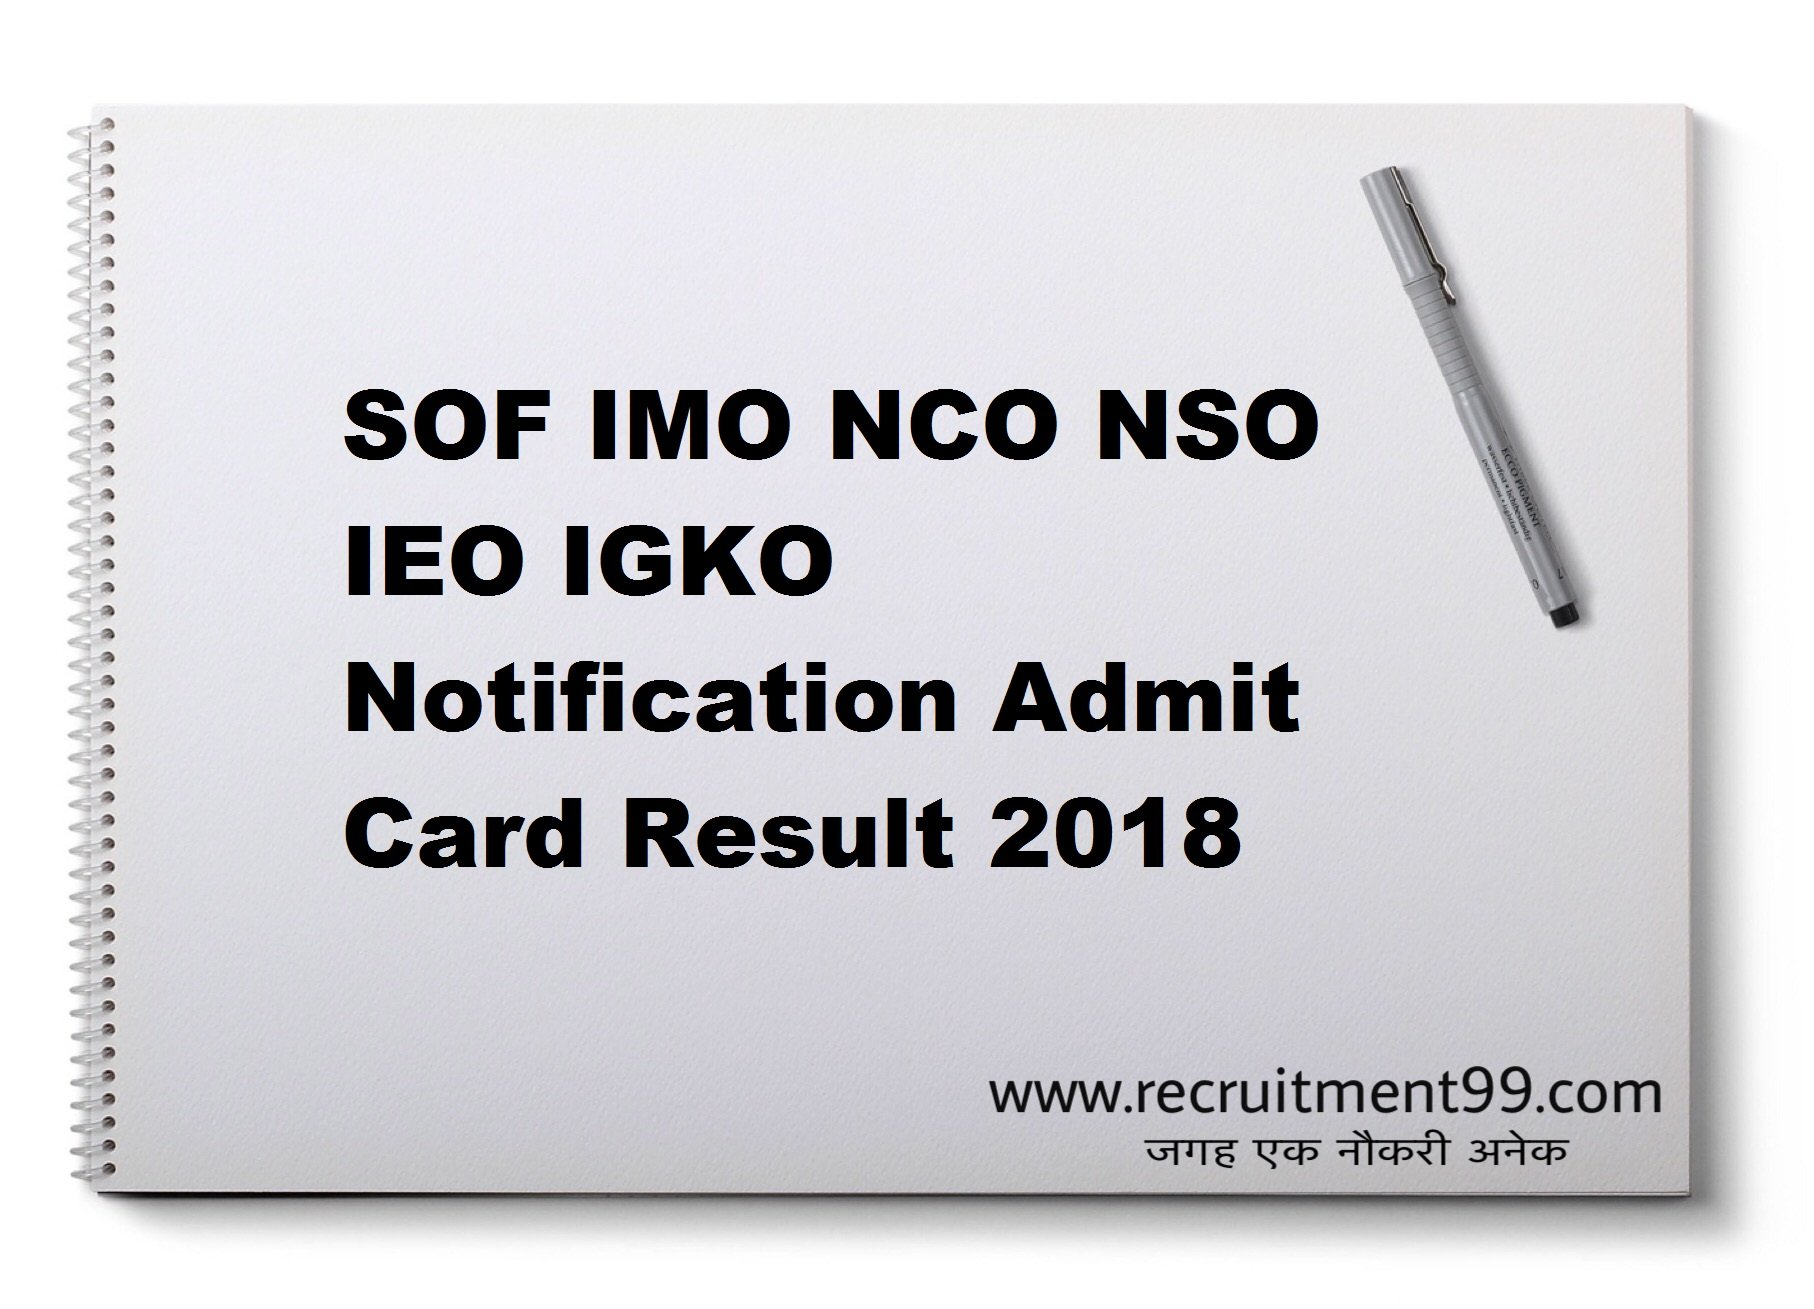 SOF IMO NCO NSO IEO IGKO Notification Admit Card Result 2018